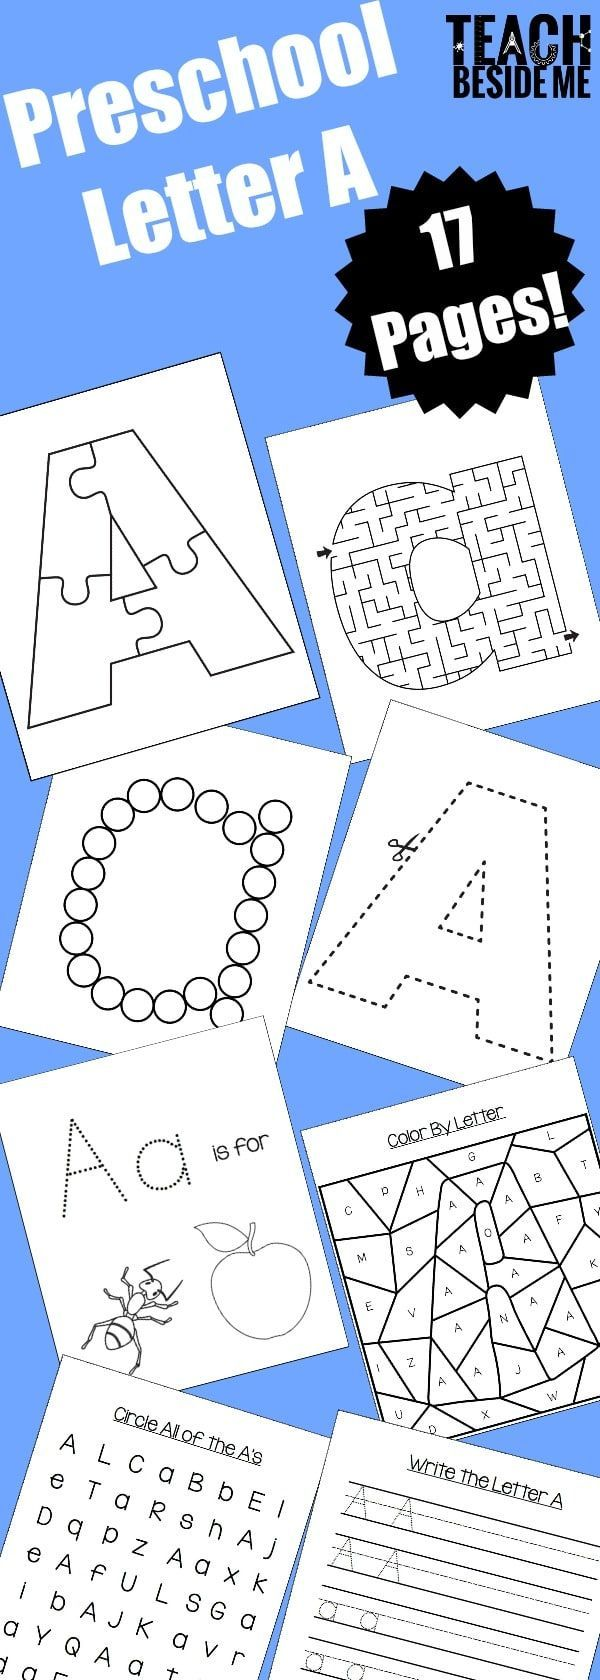 Preschool Letter A Printable Activities- 17 Pages!  via @karyntripp